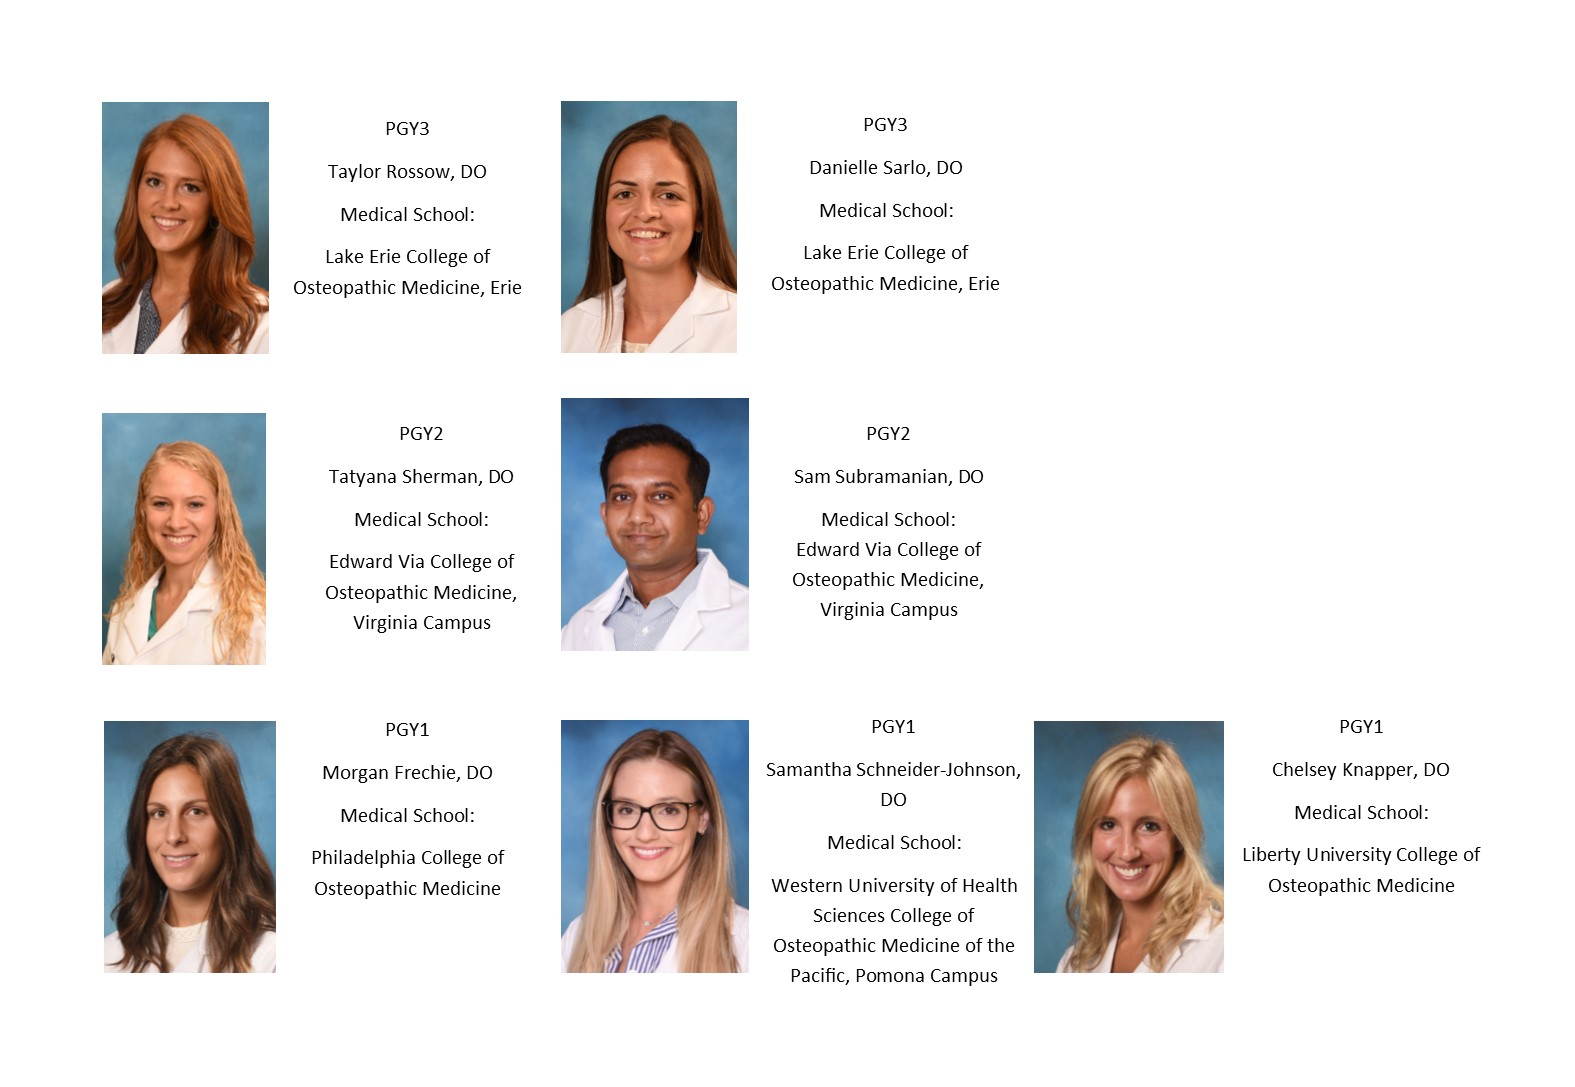 19-20 Ophthalmology Residents